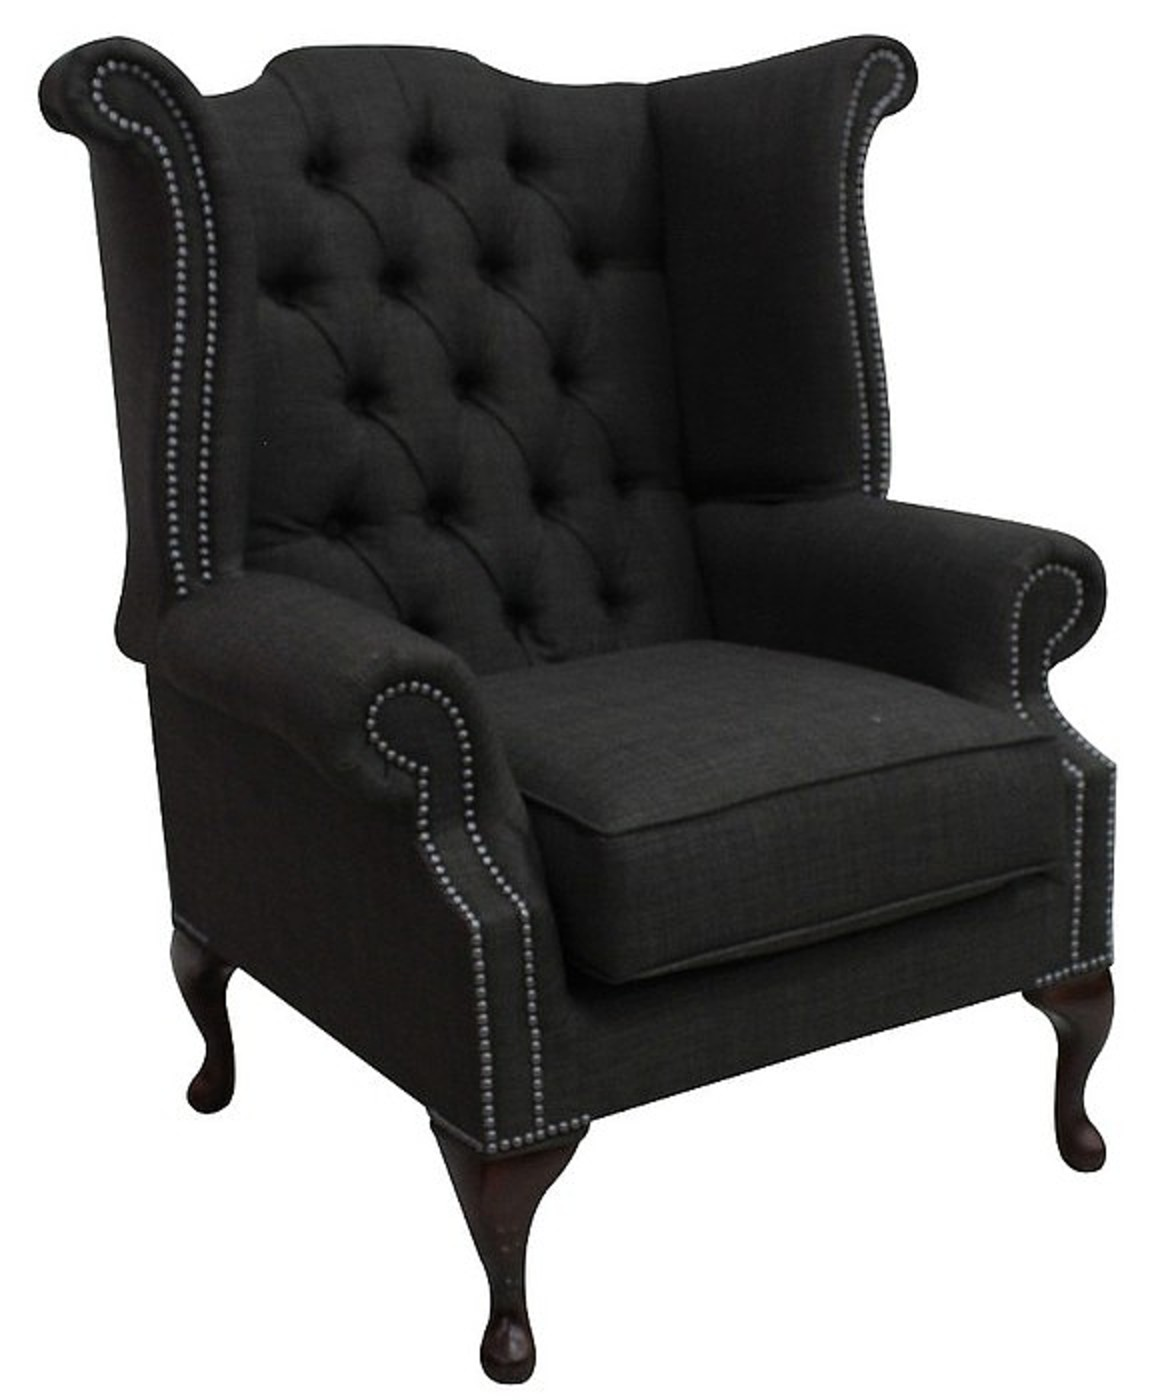 Delicieux Chesterfield Linen Queen Anne High Back Wing Chair Charles Charcoal Grey